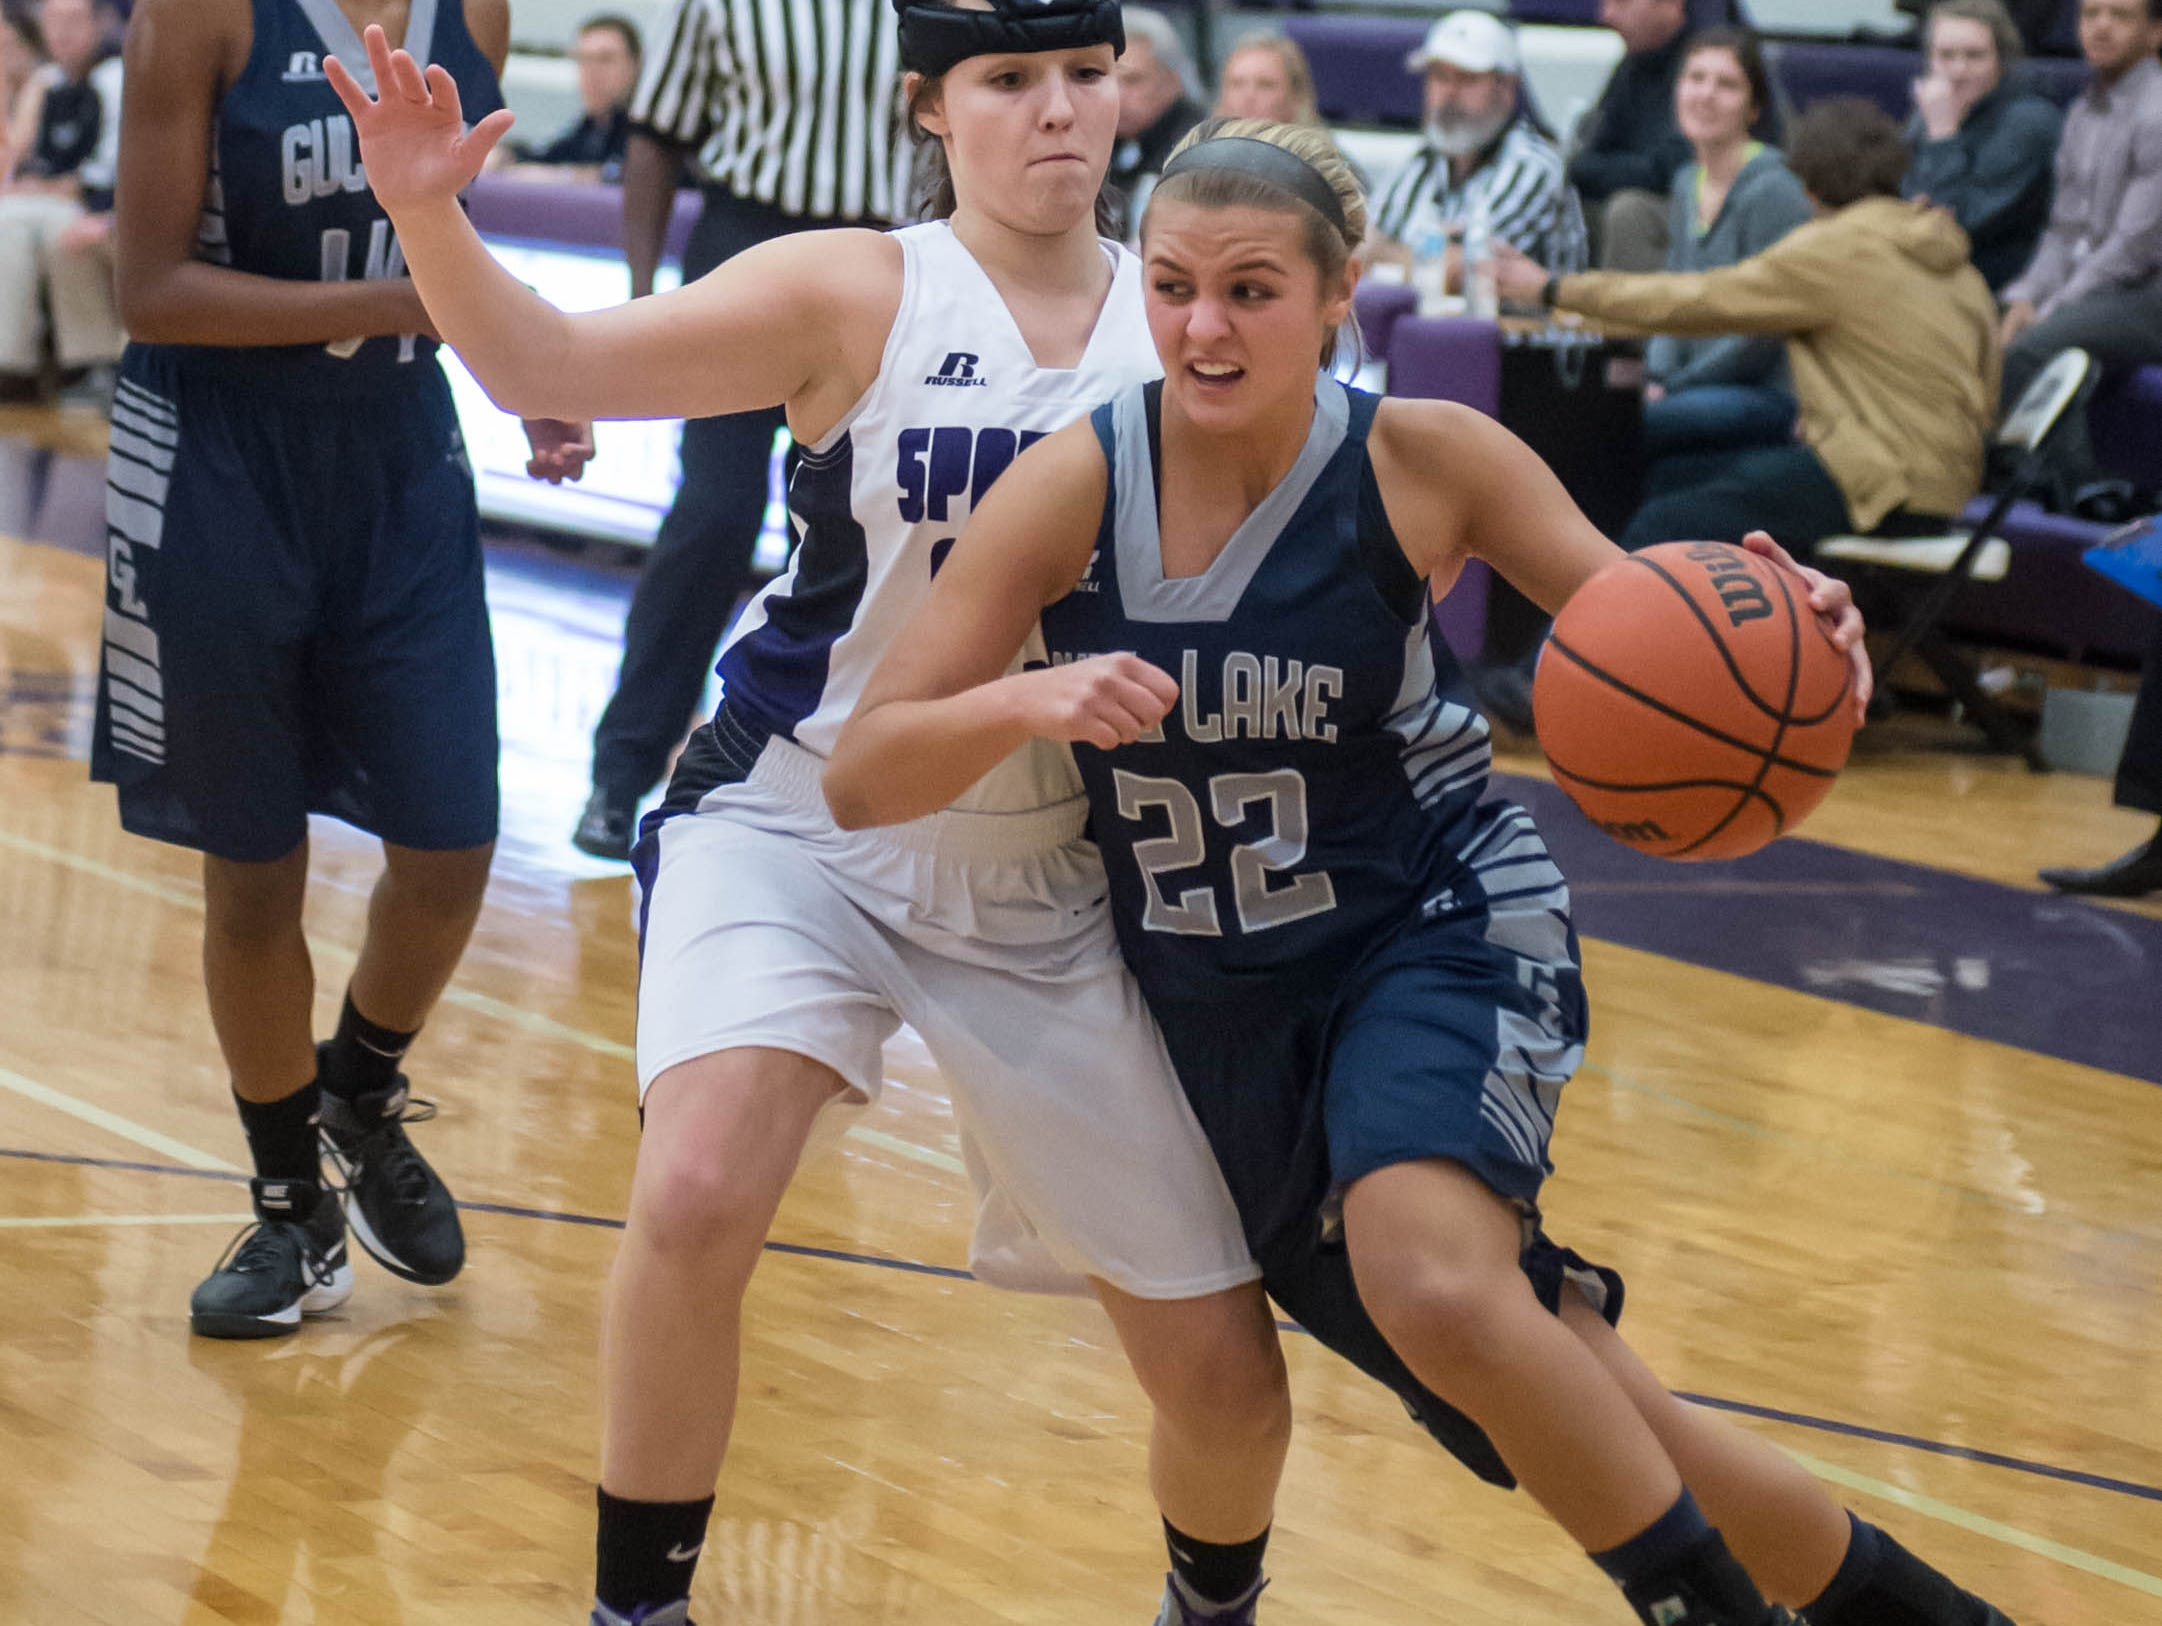 Gull Lakes's Braedan Snow drives to the basket against Lakeview in Friday evening's game.